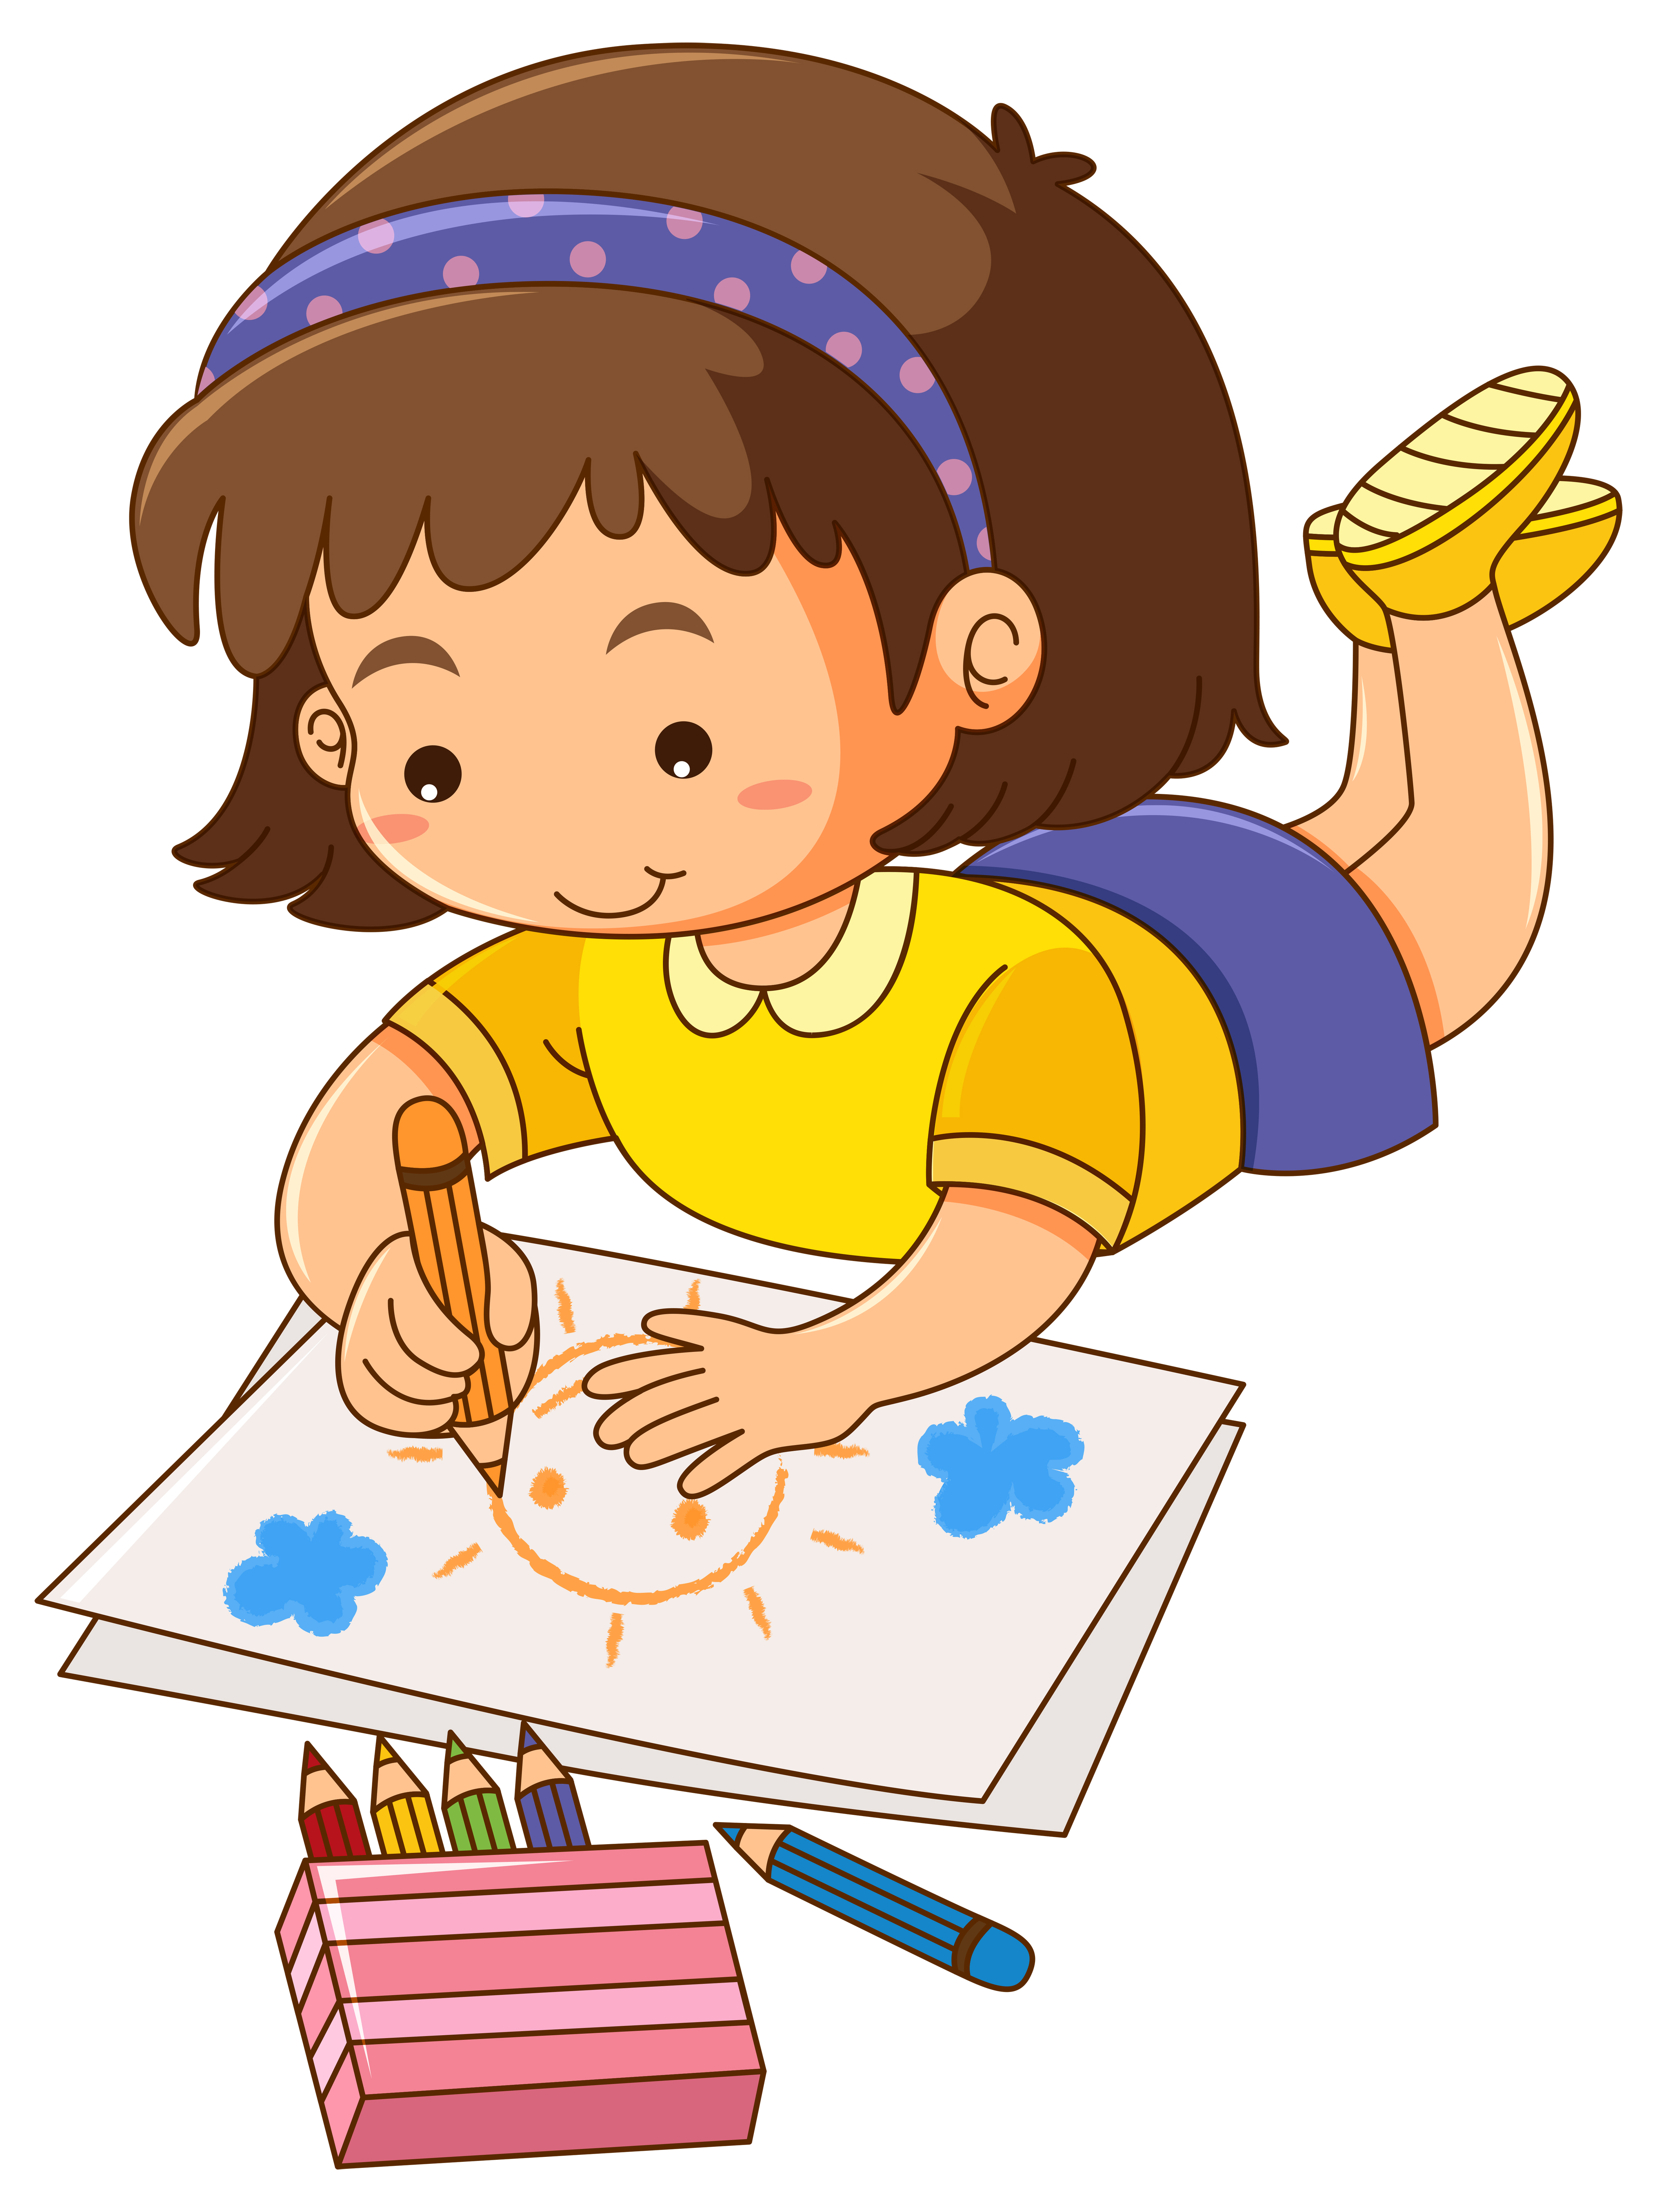 Little girl drawing sun on paper - Download Free Vectors ...